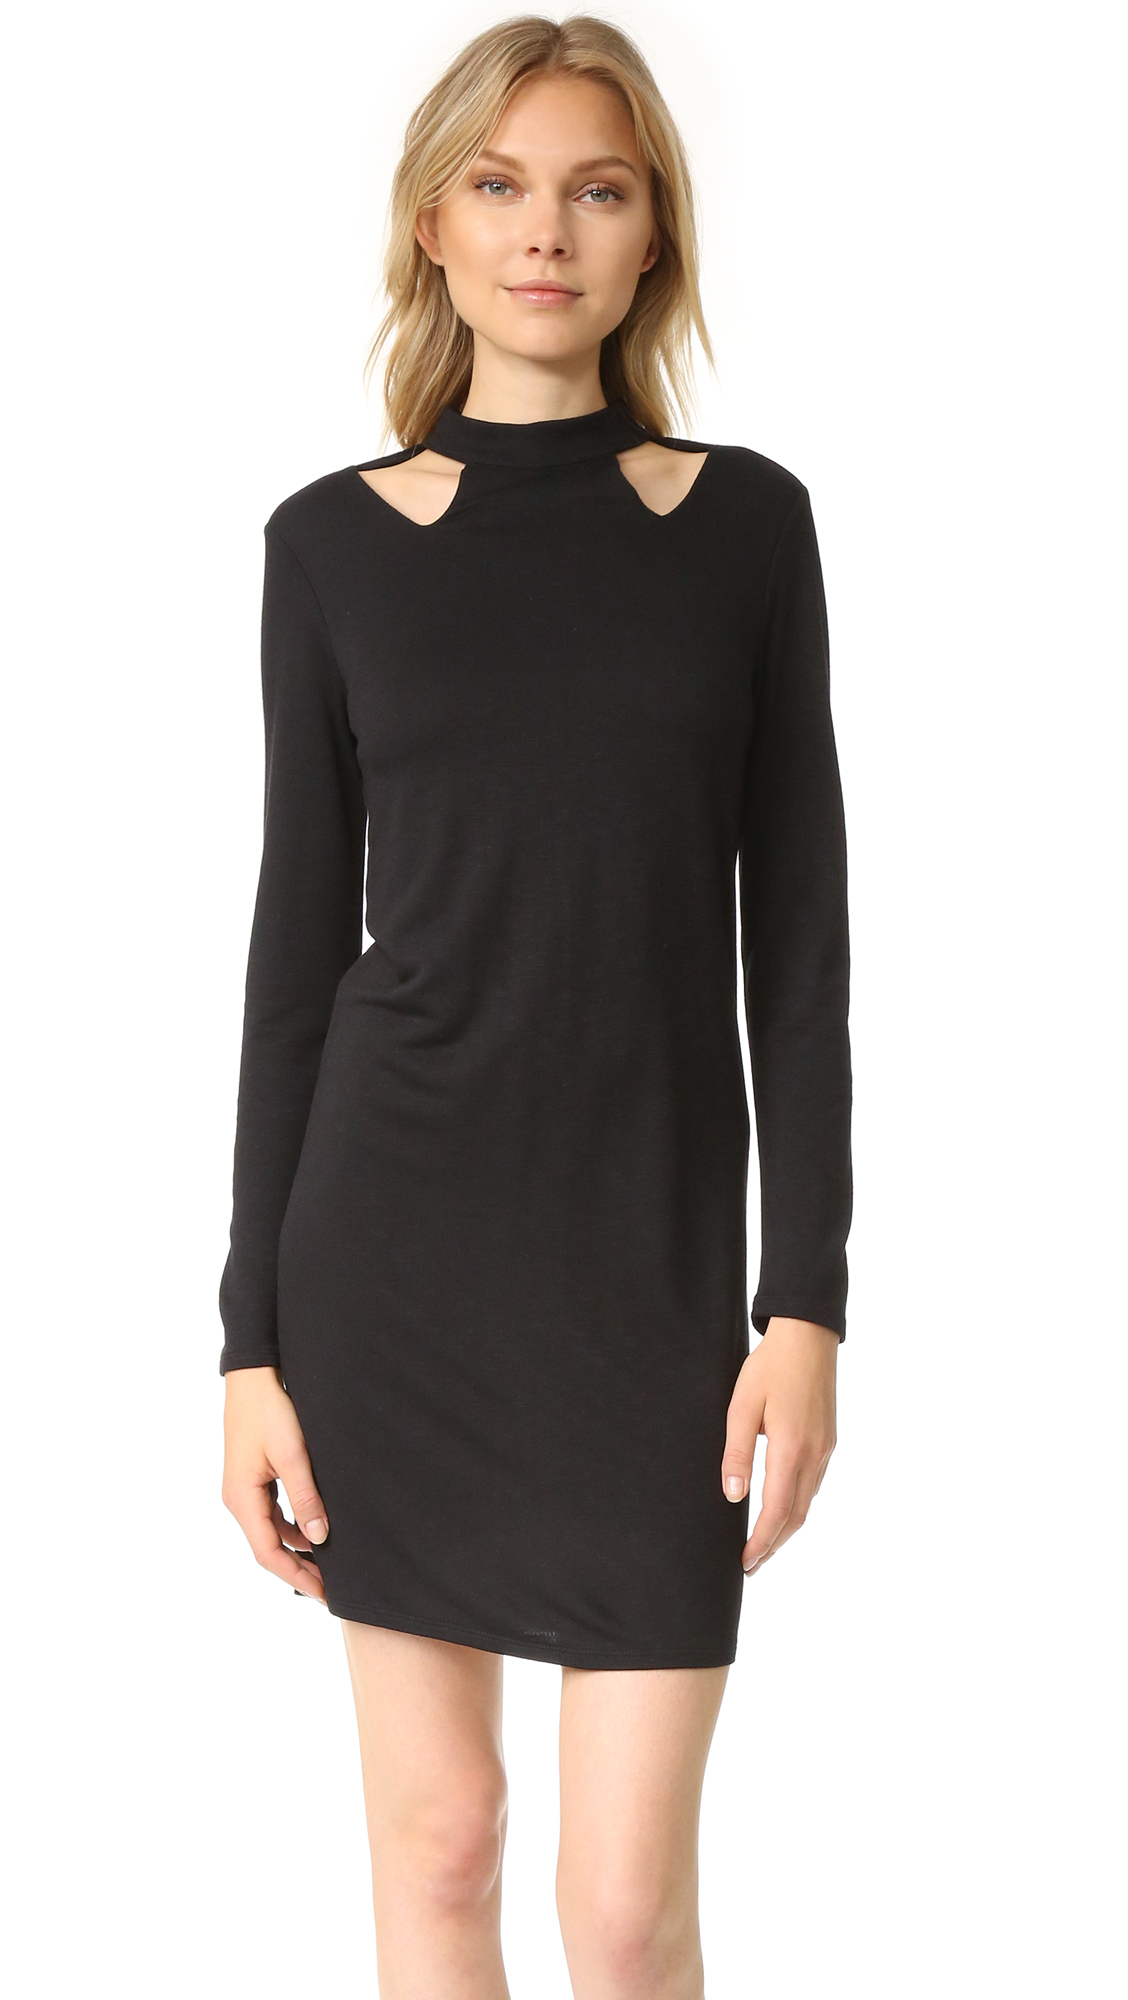 Lanston Cutout Turtleneck Mini Dress - Black at Shopbop